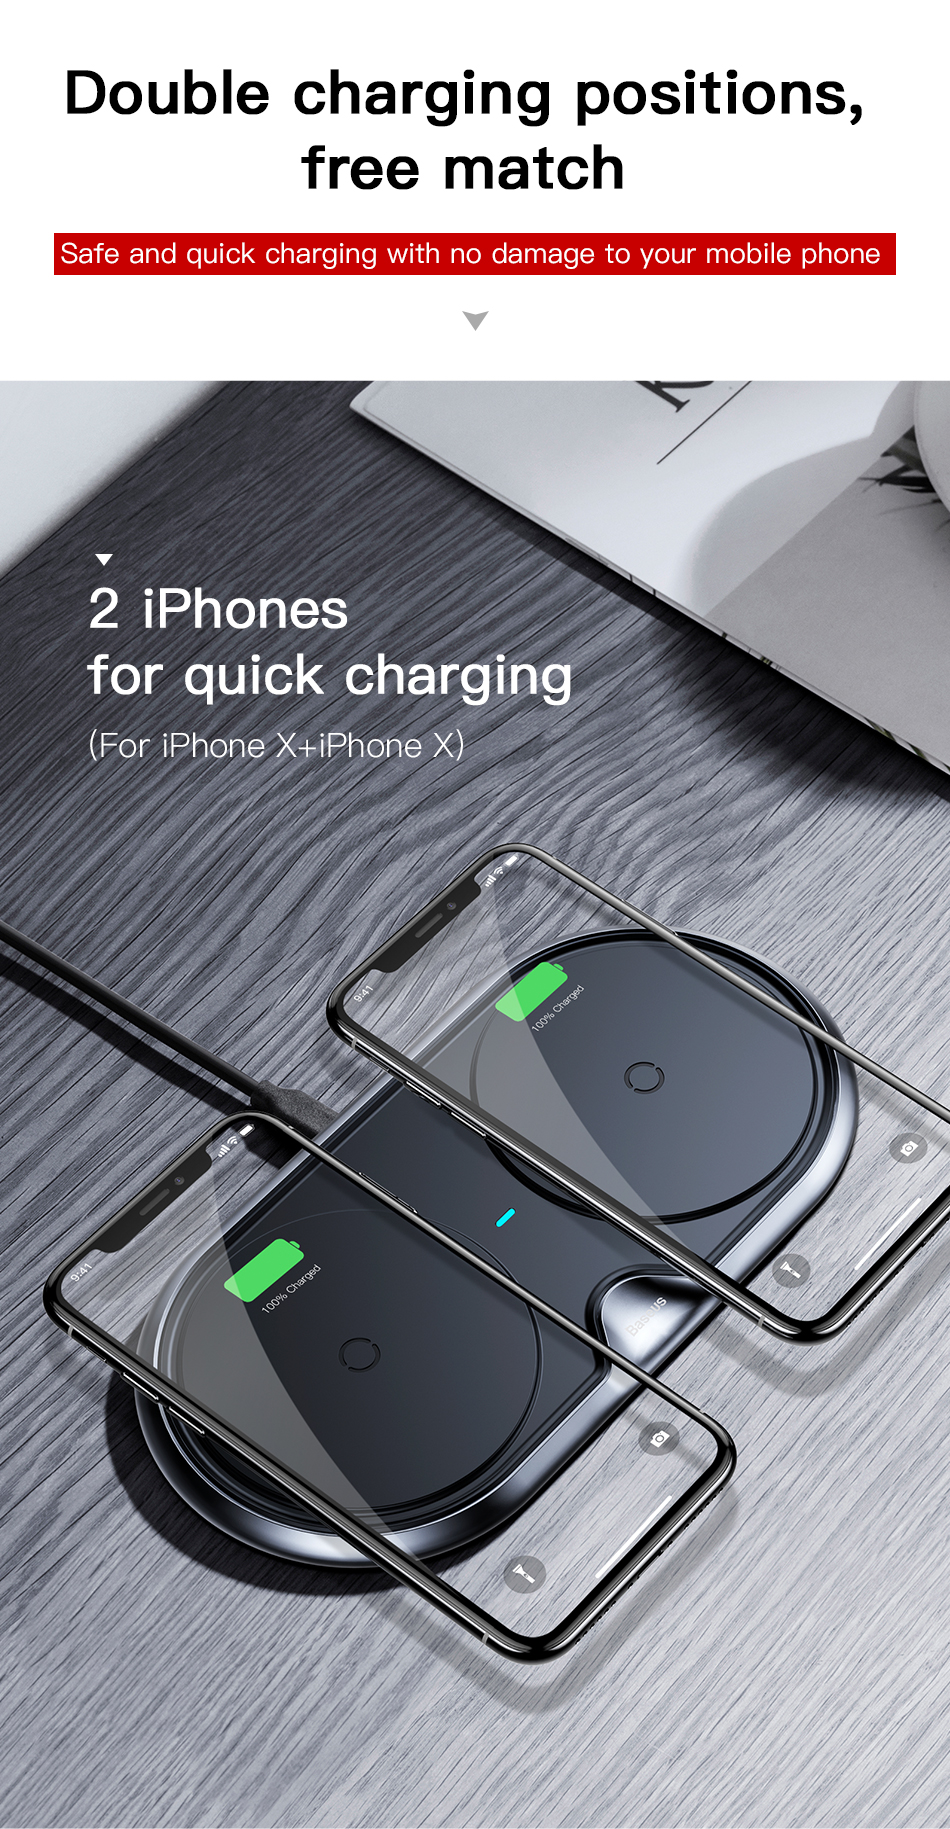 Baseus Dual-Seat Qi-Wireless Fast Charger